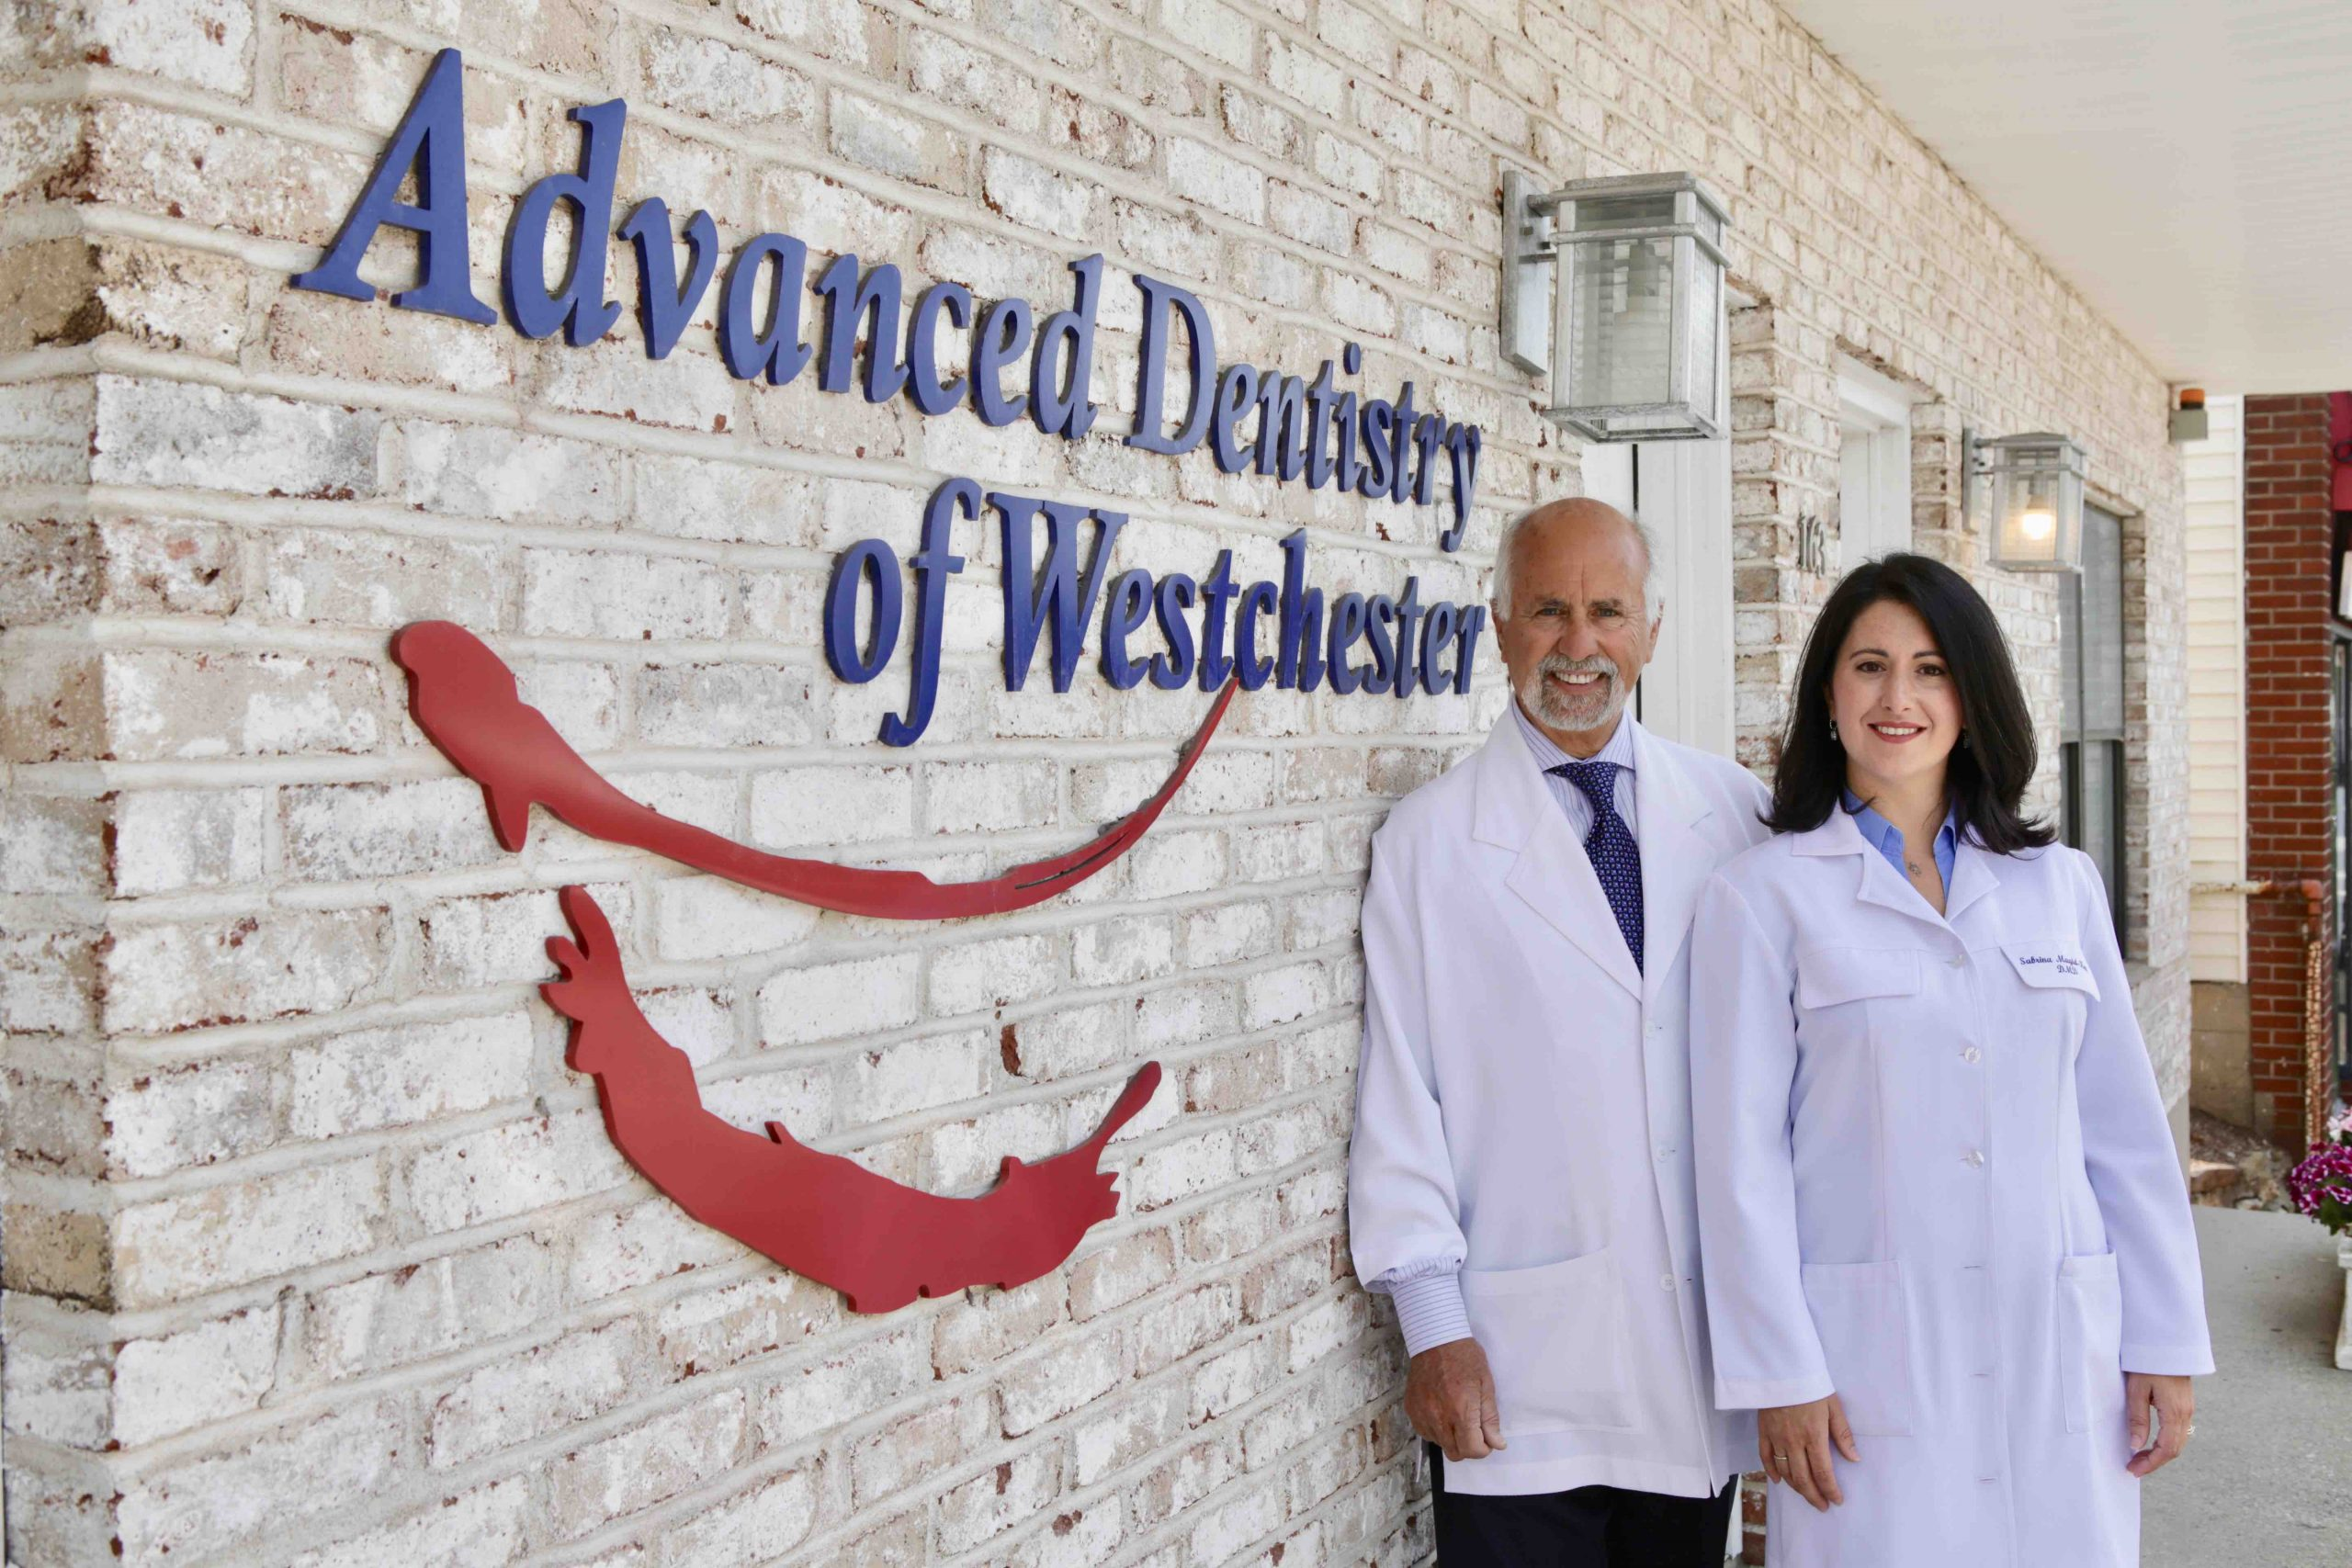 Dr. Ken Magid Dr. Sabrina Magid Katz eco friendly dentistry